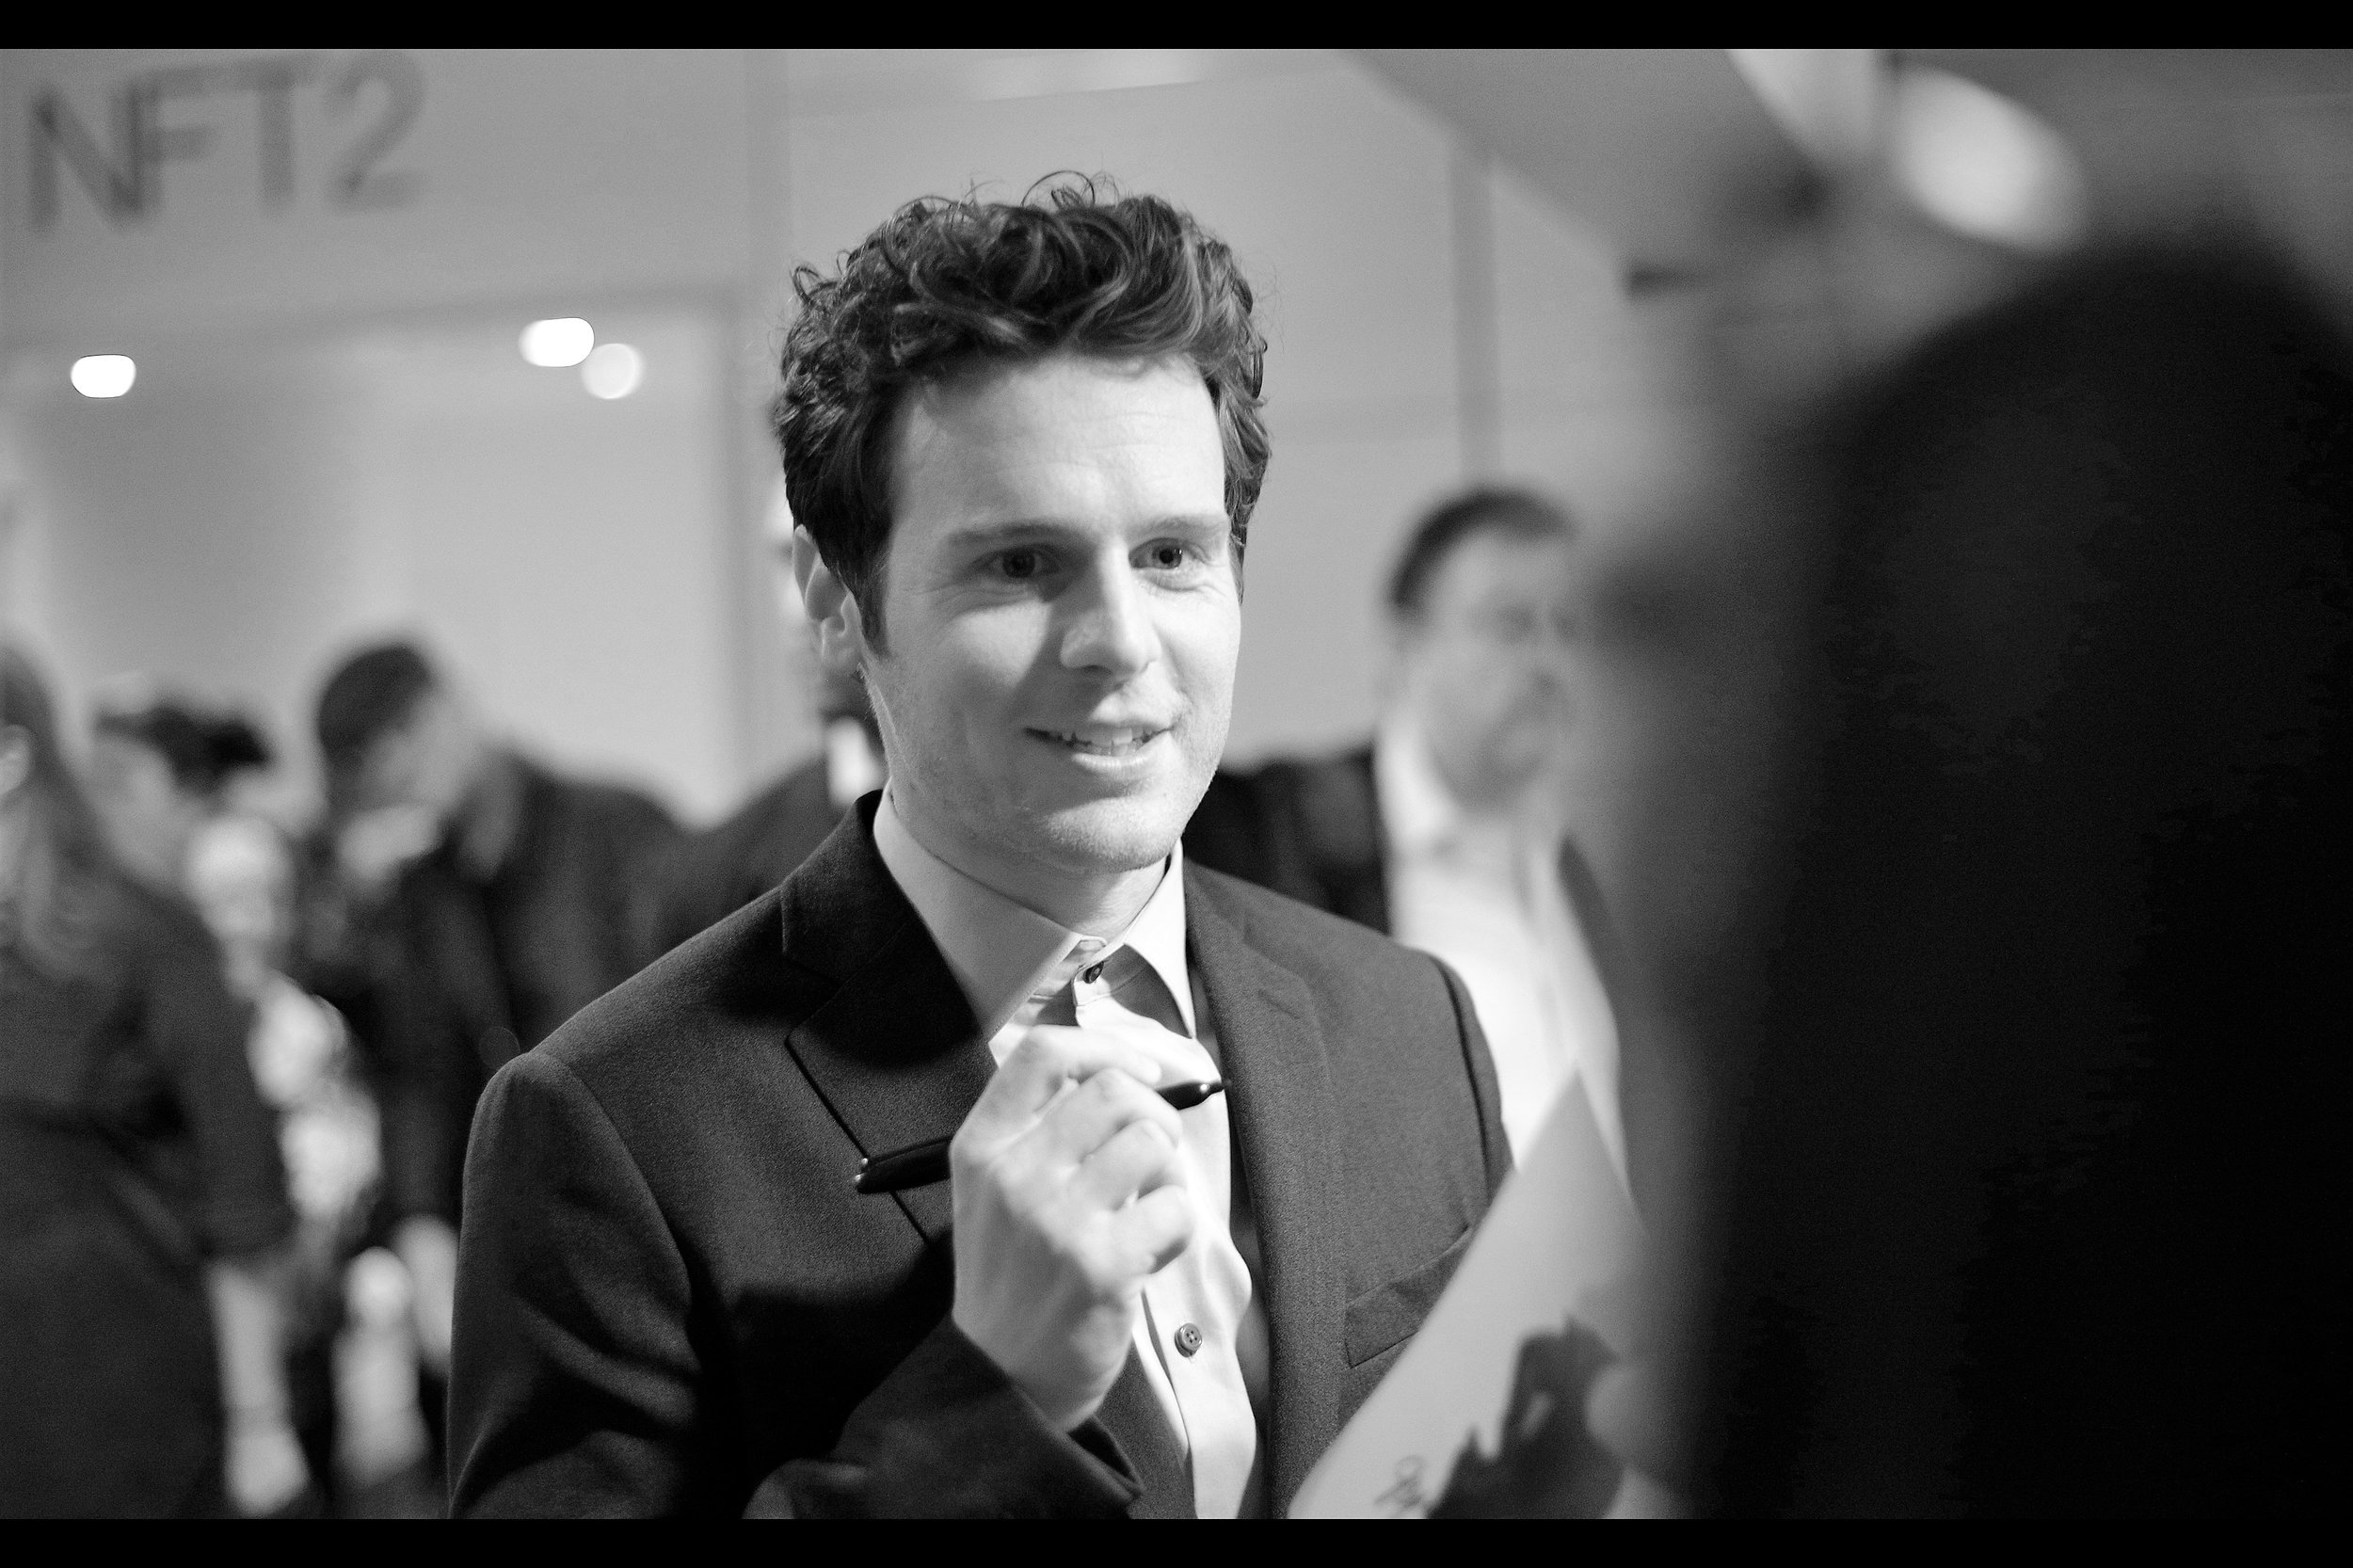 Jonathan Groff. I have little to add, but he's making people who are not me happy by singing and posing for selfies, which I think is nice.